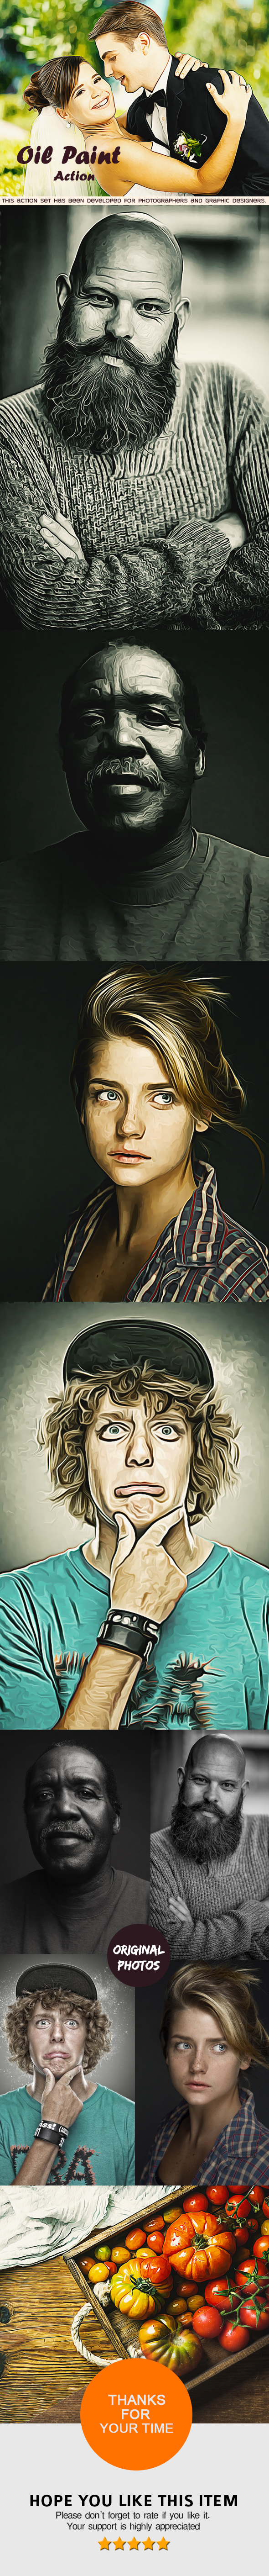 Oil Paint  Action - Photoshop Action - Photoshop Add-ons